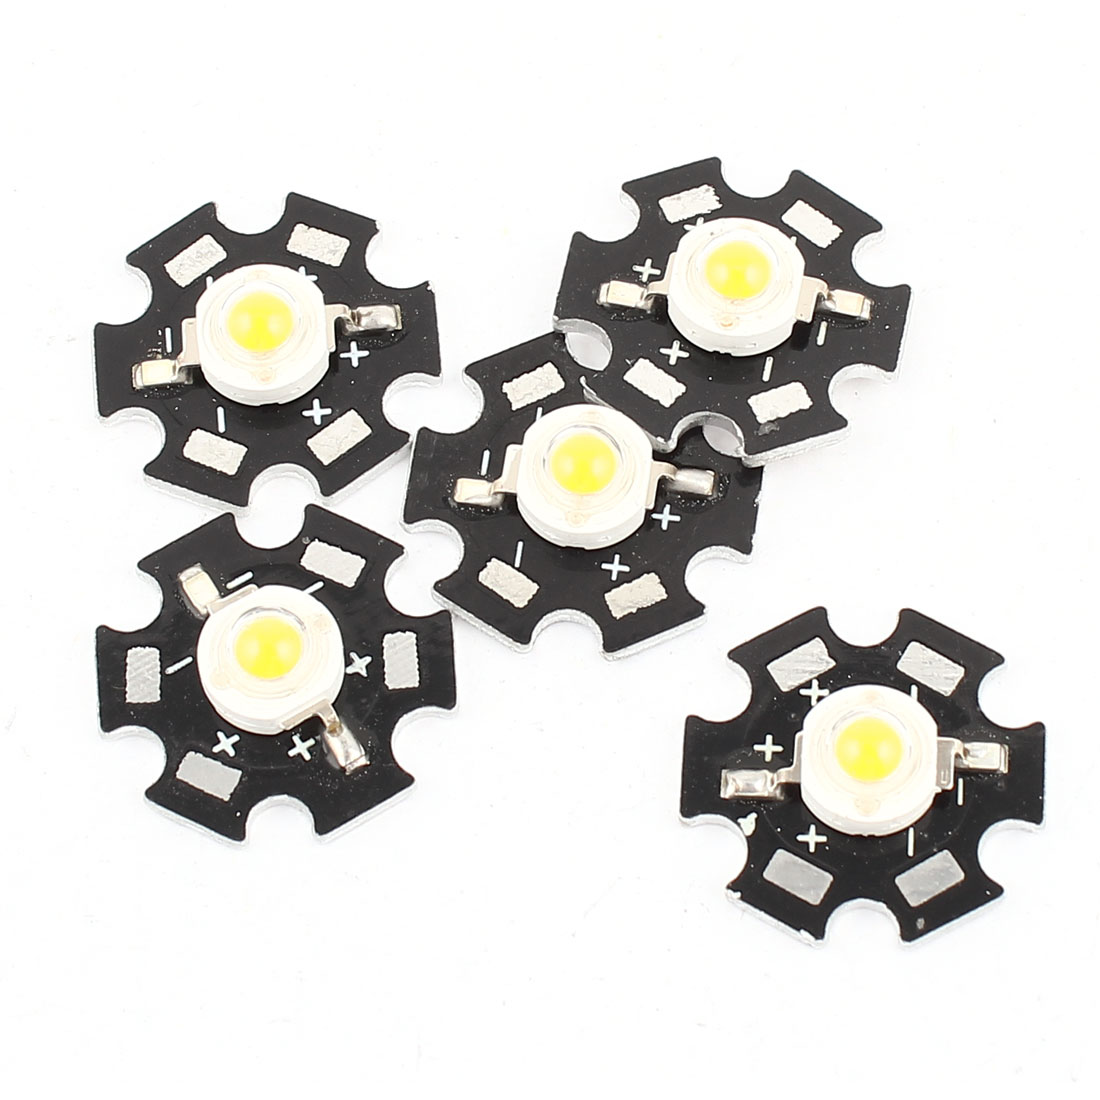 5Pcs 1W 3.0-3.6V 350mA Yellow 90LM LED Lamp Emitter Bead 20mm Base